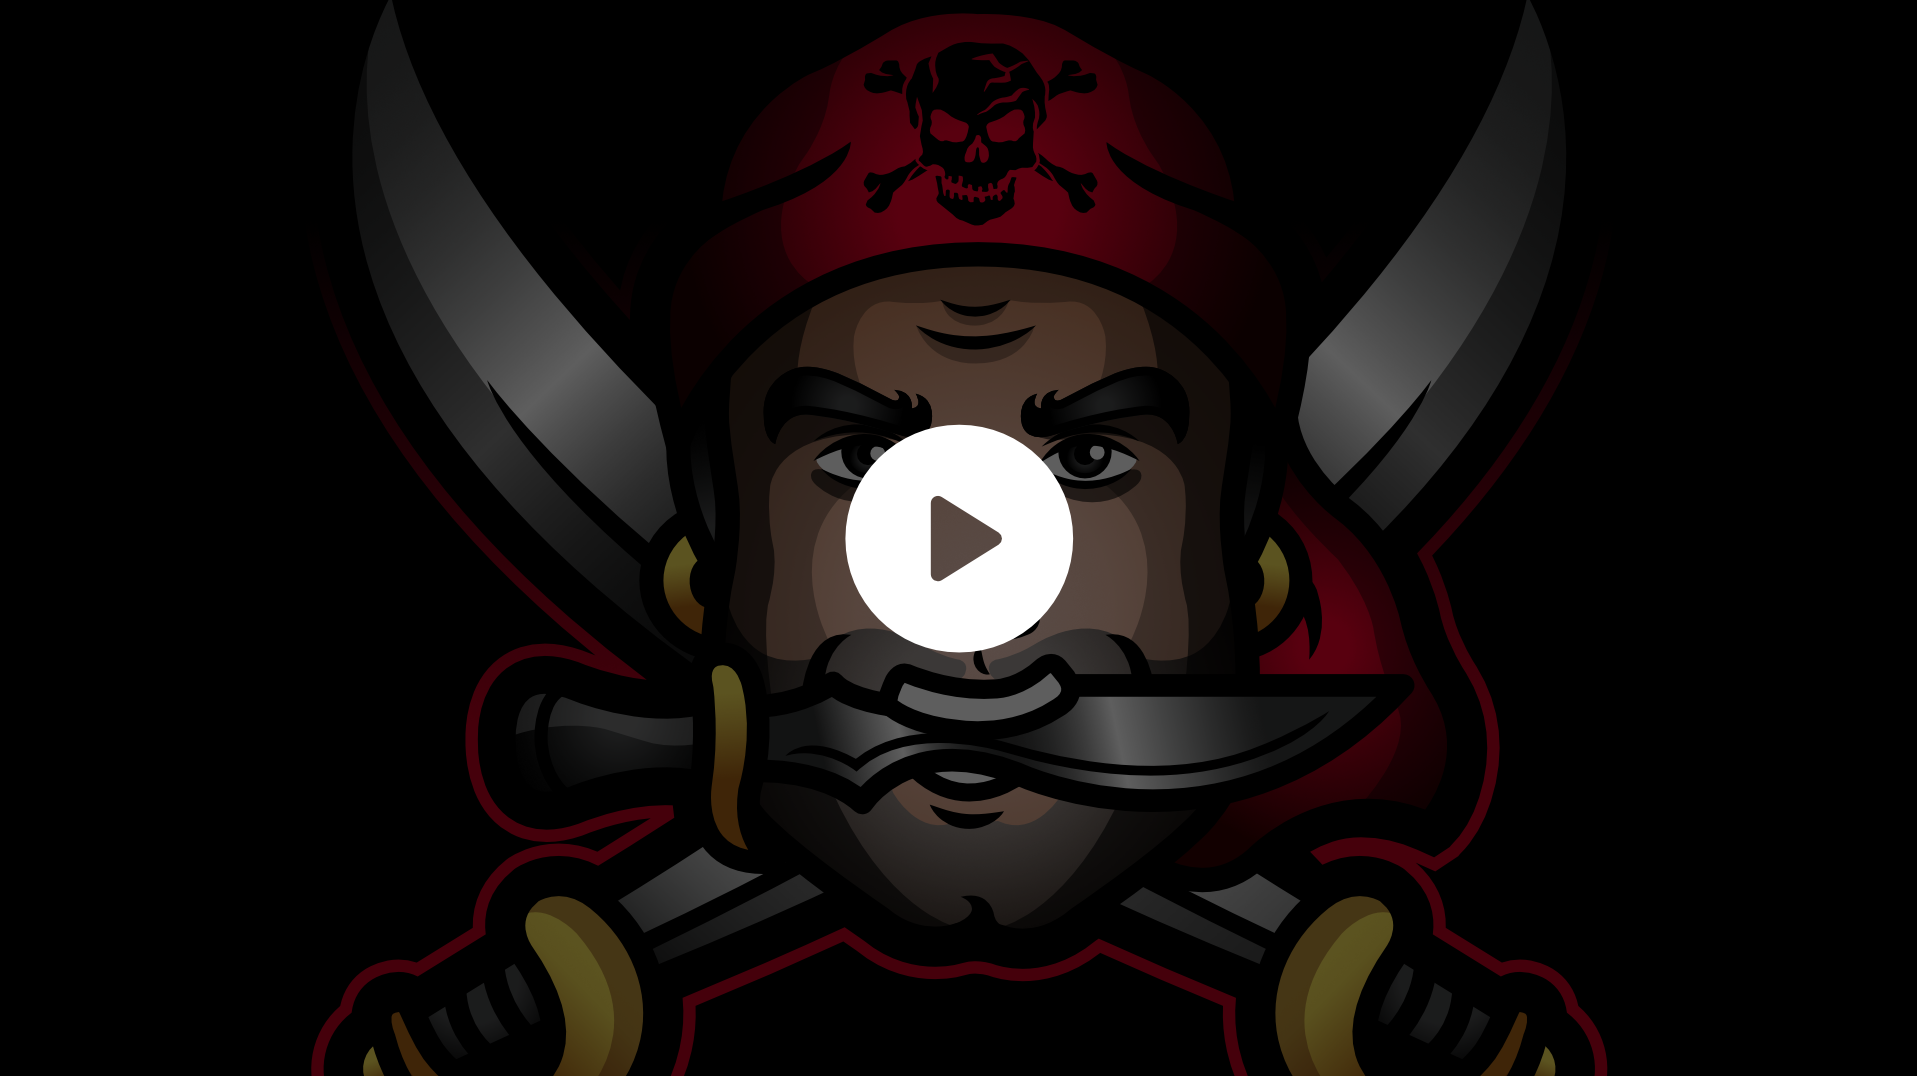 Animated alerts using a pirate mascot logo. Designed for a Twitch streamer